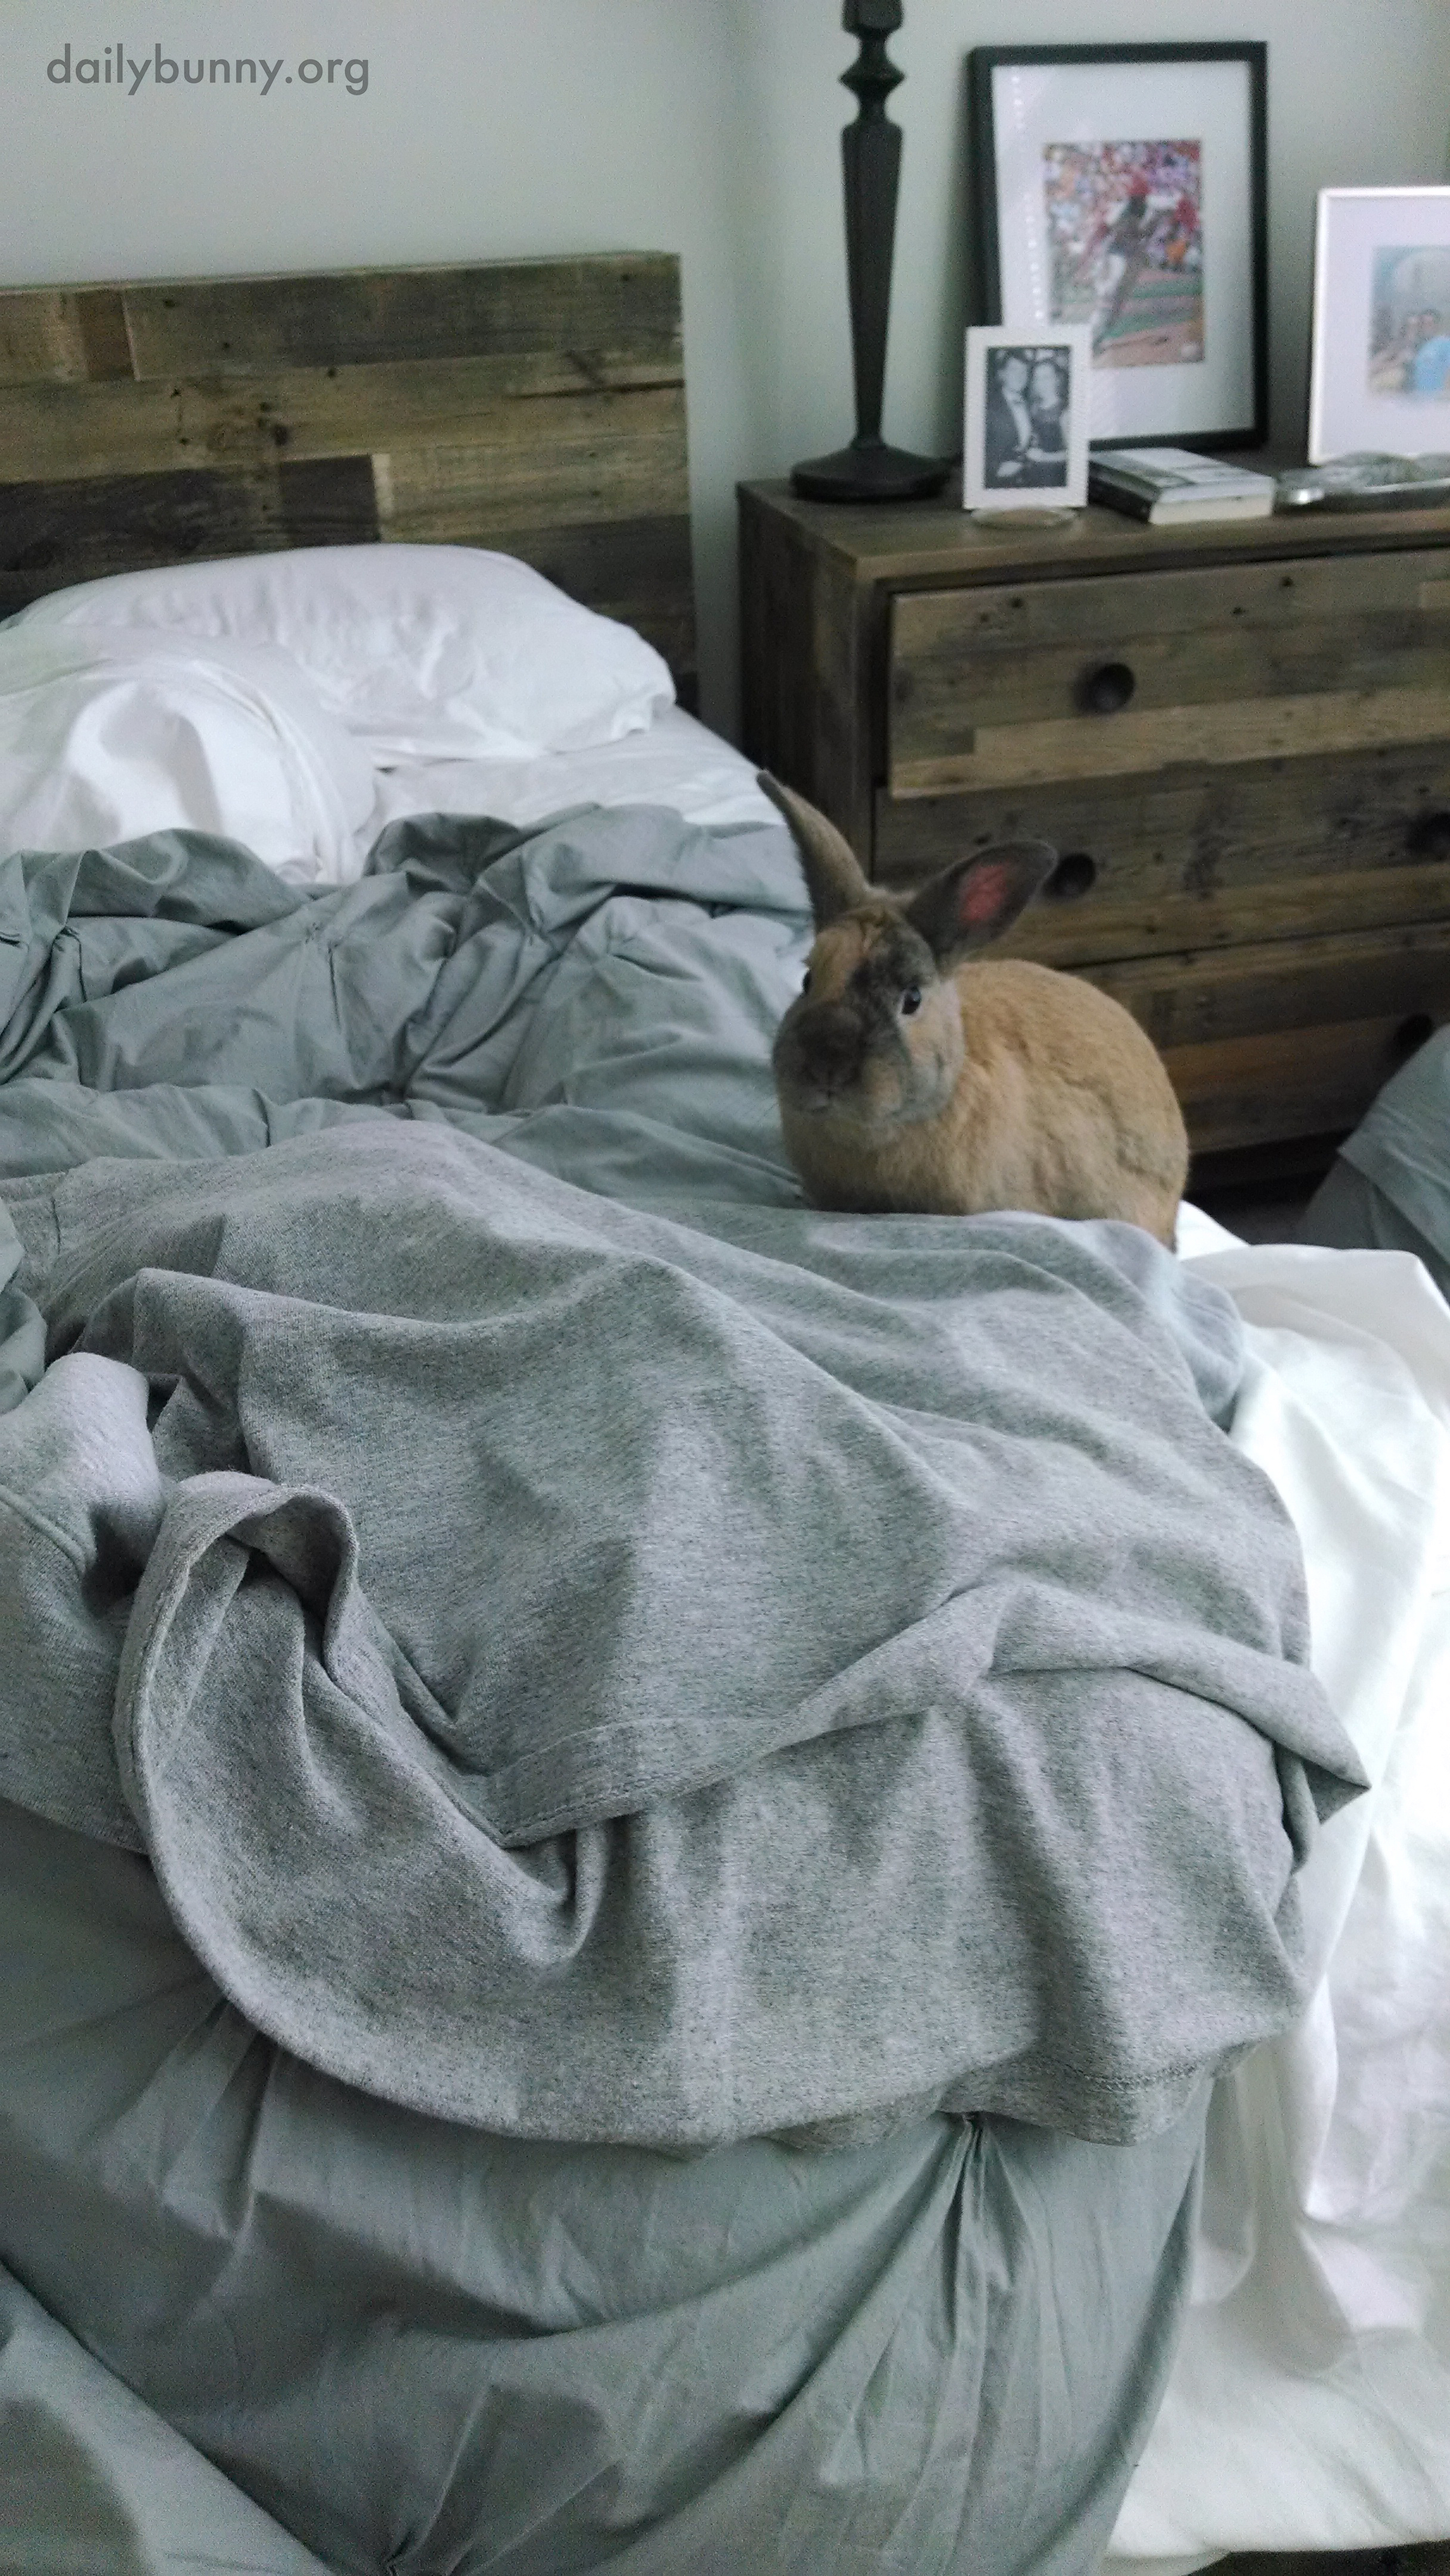 Bunny Is Ready for a Languid Morning Full of Cuddles - So Get Back in the Bed, Human! 1